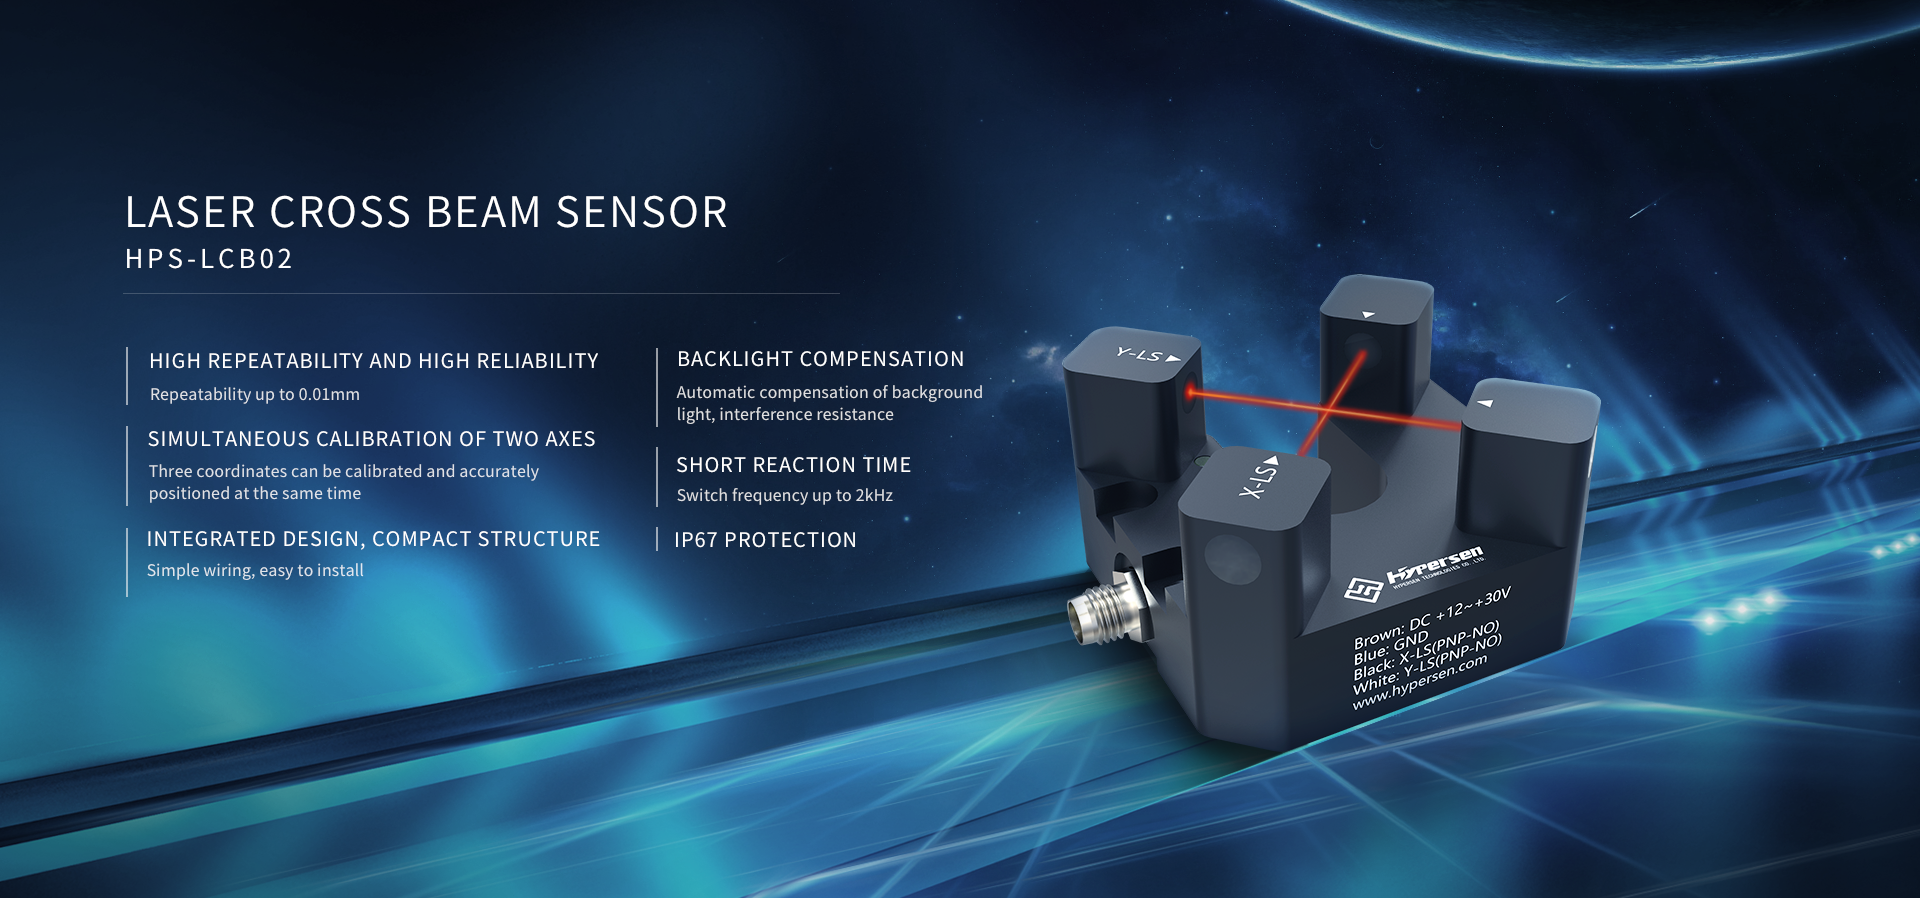 Laser Cross Beam Sensor